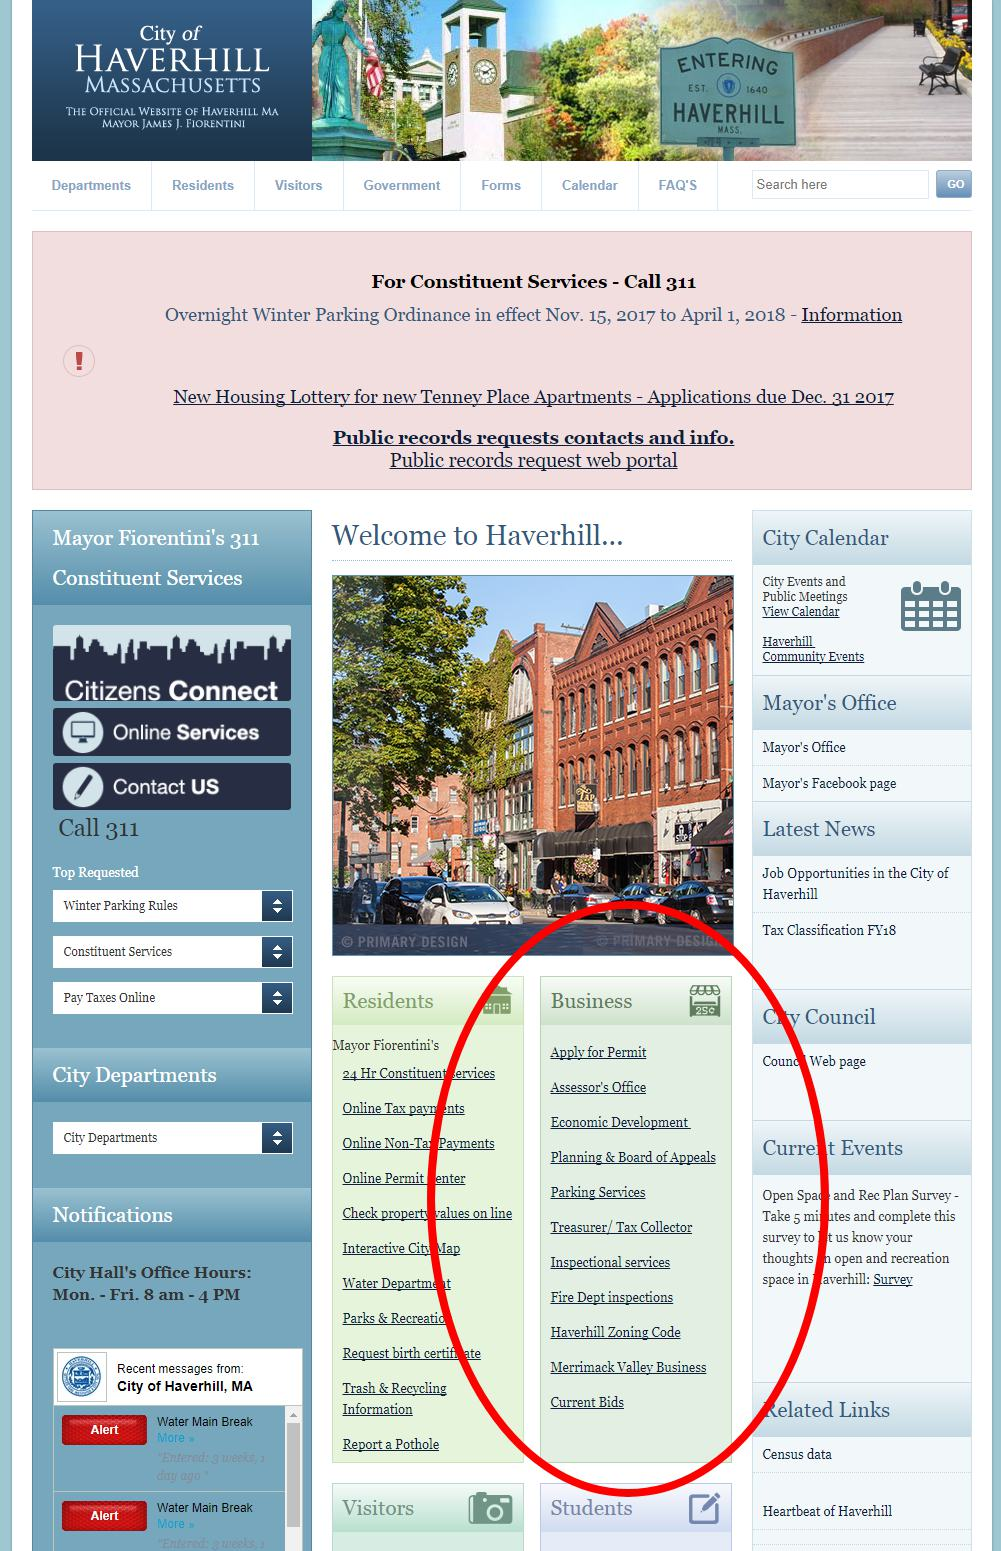 City of Haverhill homepage